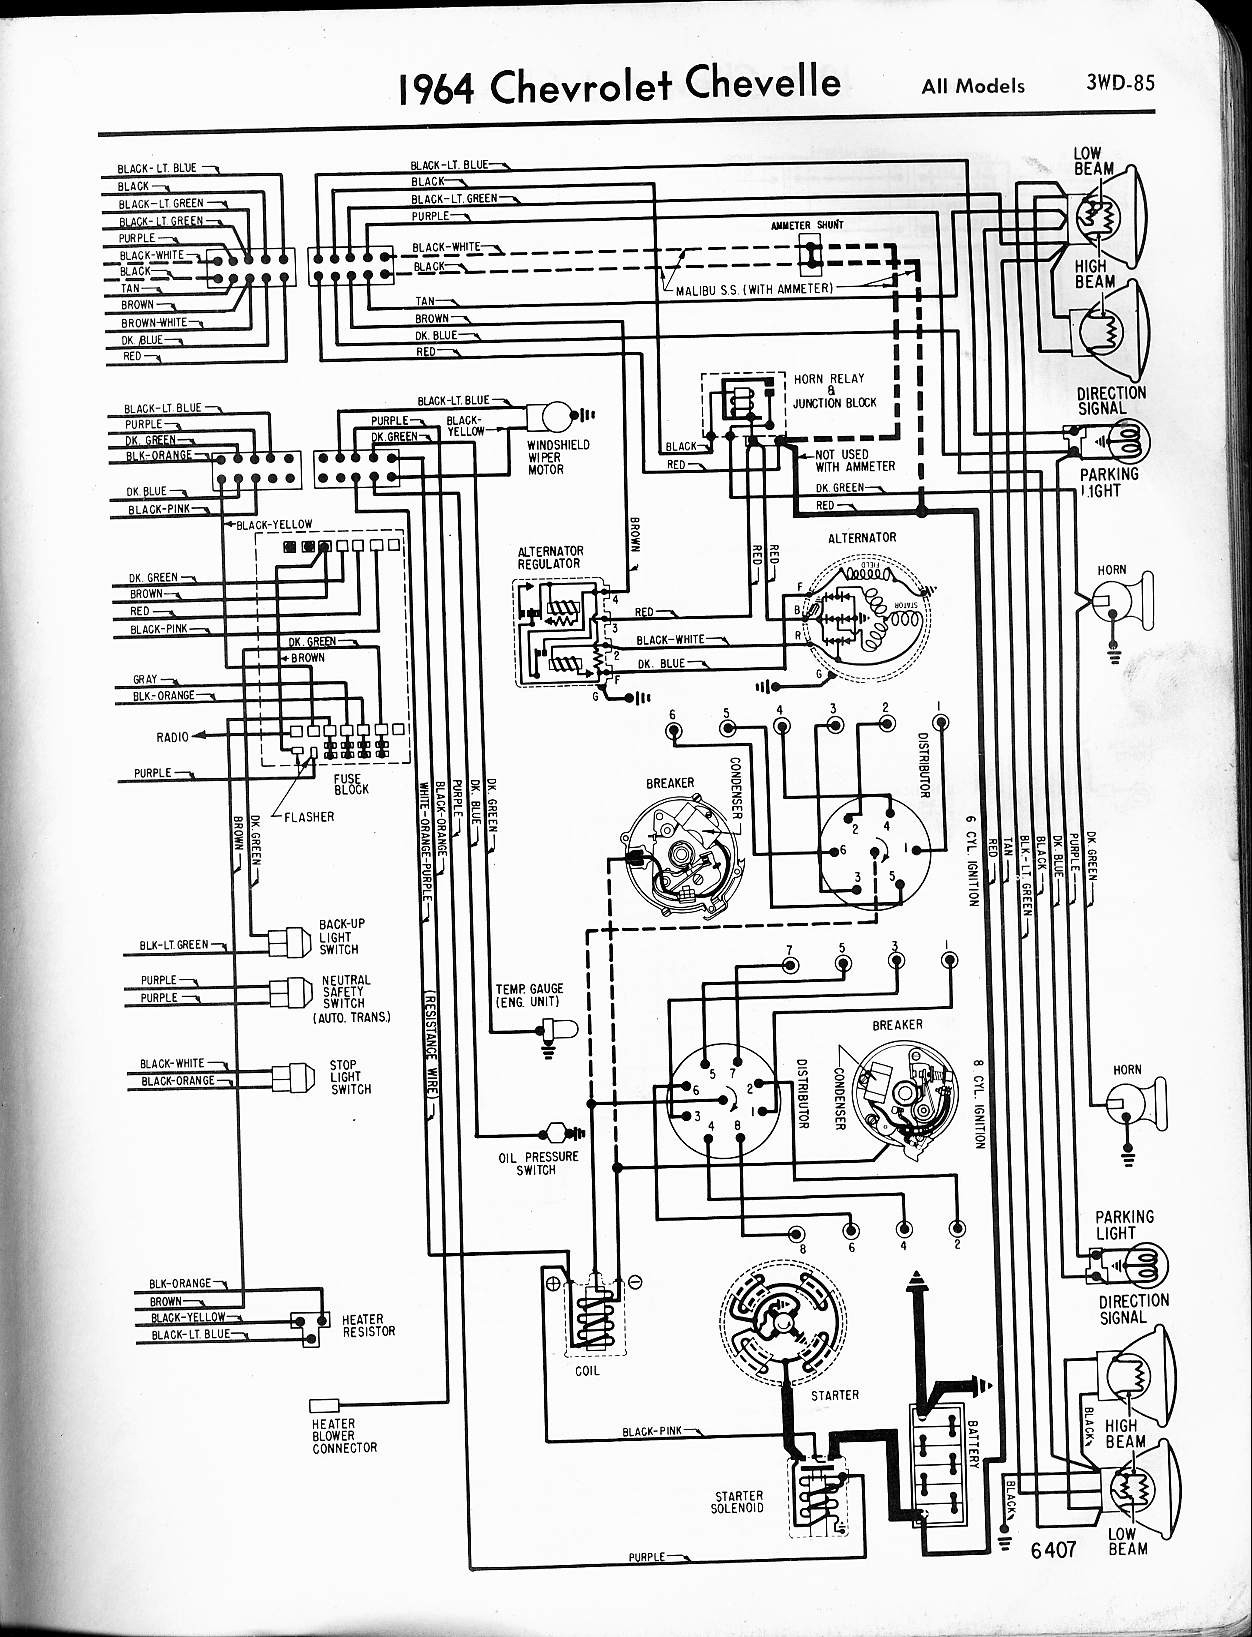 1969 chevelle wiring diagram Download-1969 chevelle wiring diagram Collection Chevy S Arresting 1969 Chevelle Wiring 1969 Camaro Wiring Harness 10-t